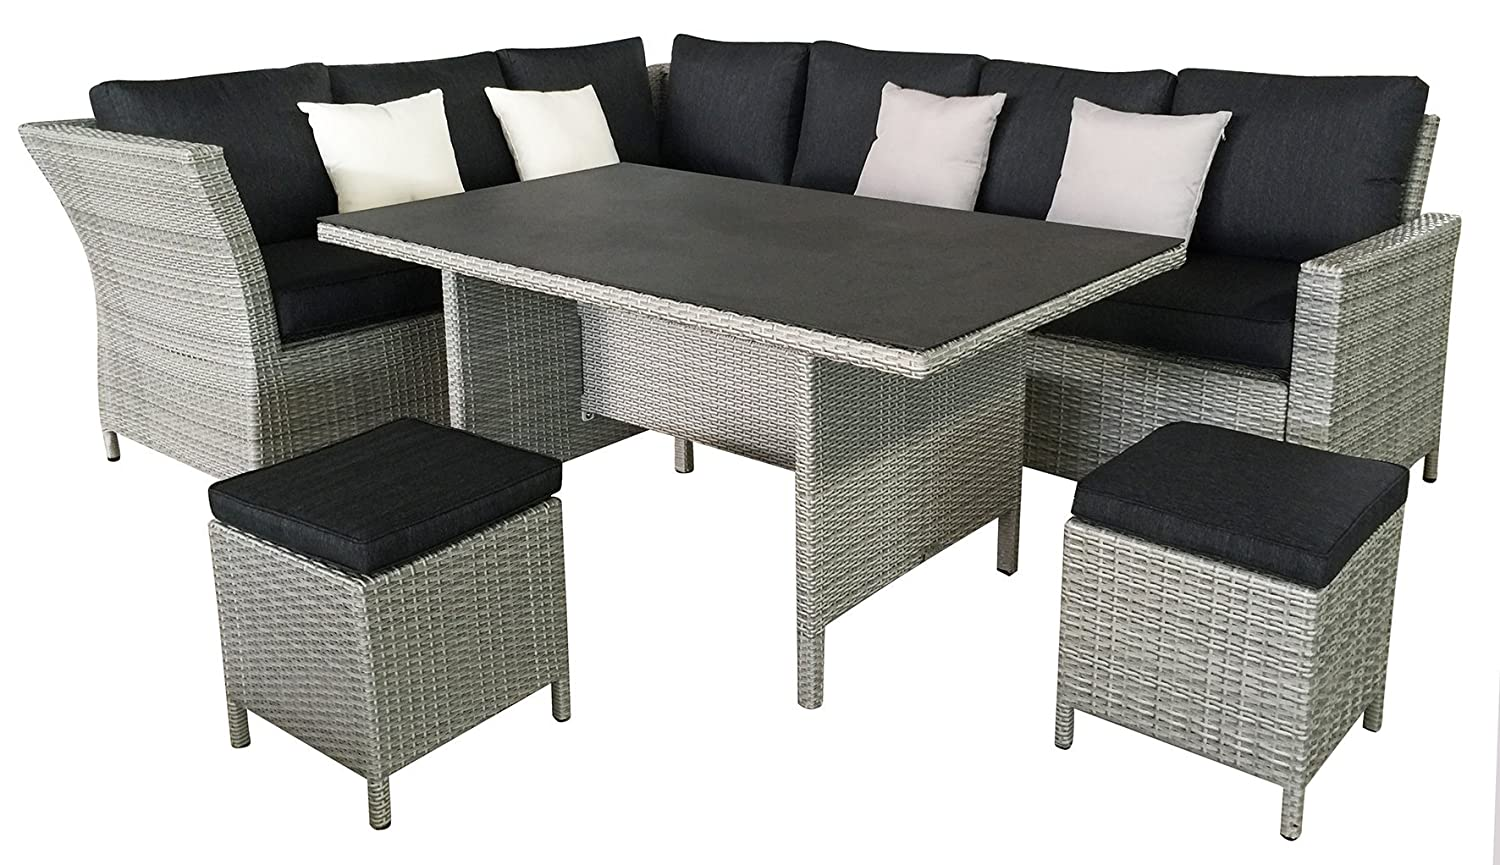 gartenmbel gnstig rattan top santiago new tlg sessel tisch x with gartenmbel gnstig rattan. Black Bedroom Furniture Sets. Home Design Ideas